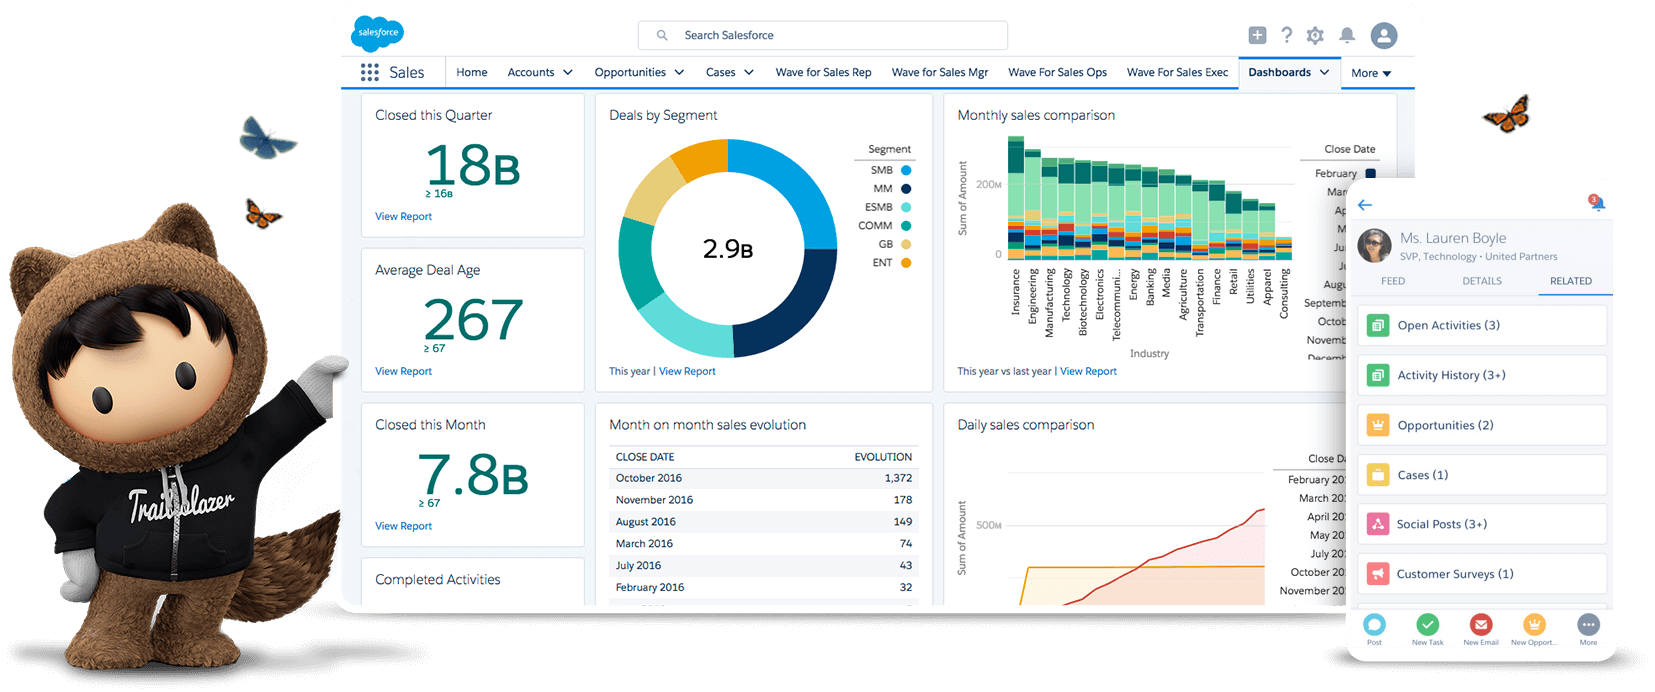 Salesforce com: The Customer Success Platform To Grow Your Business